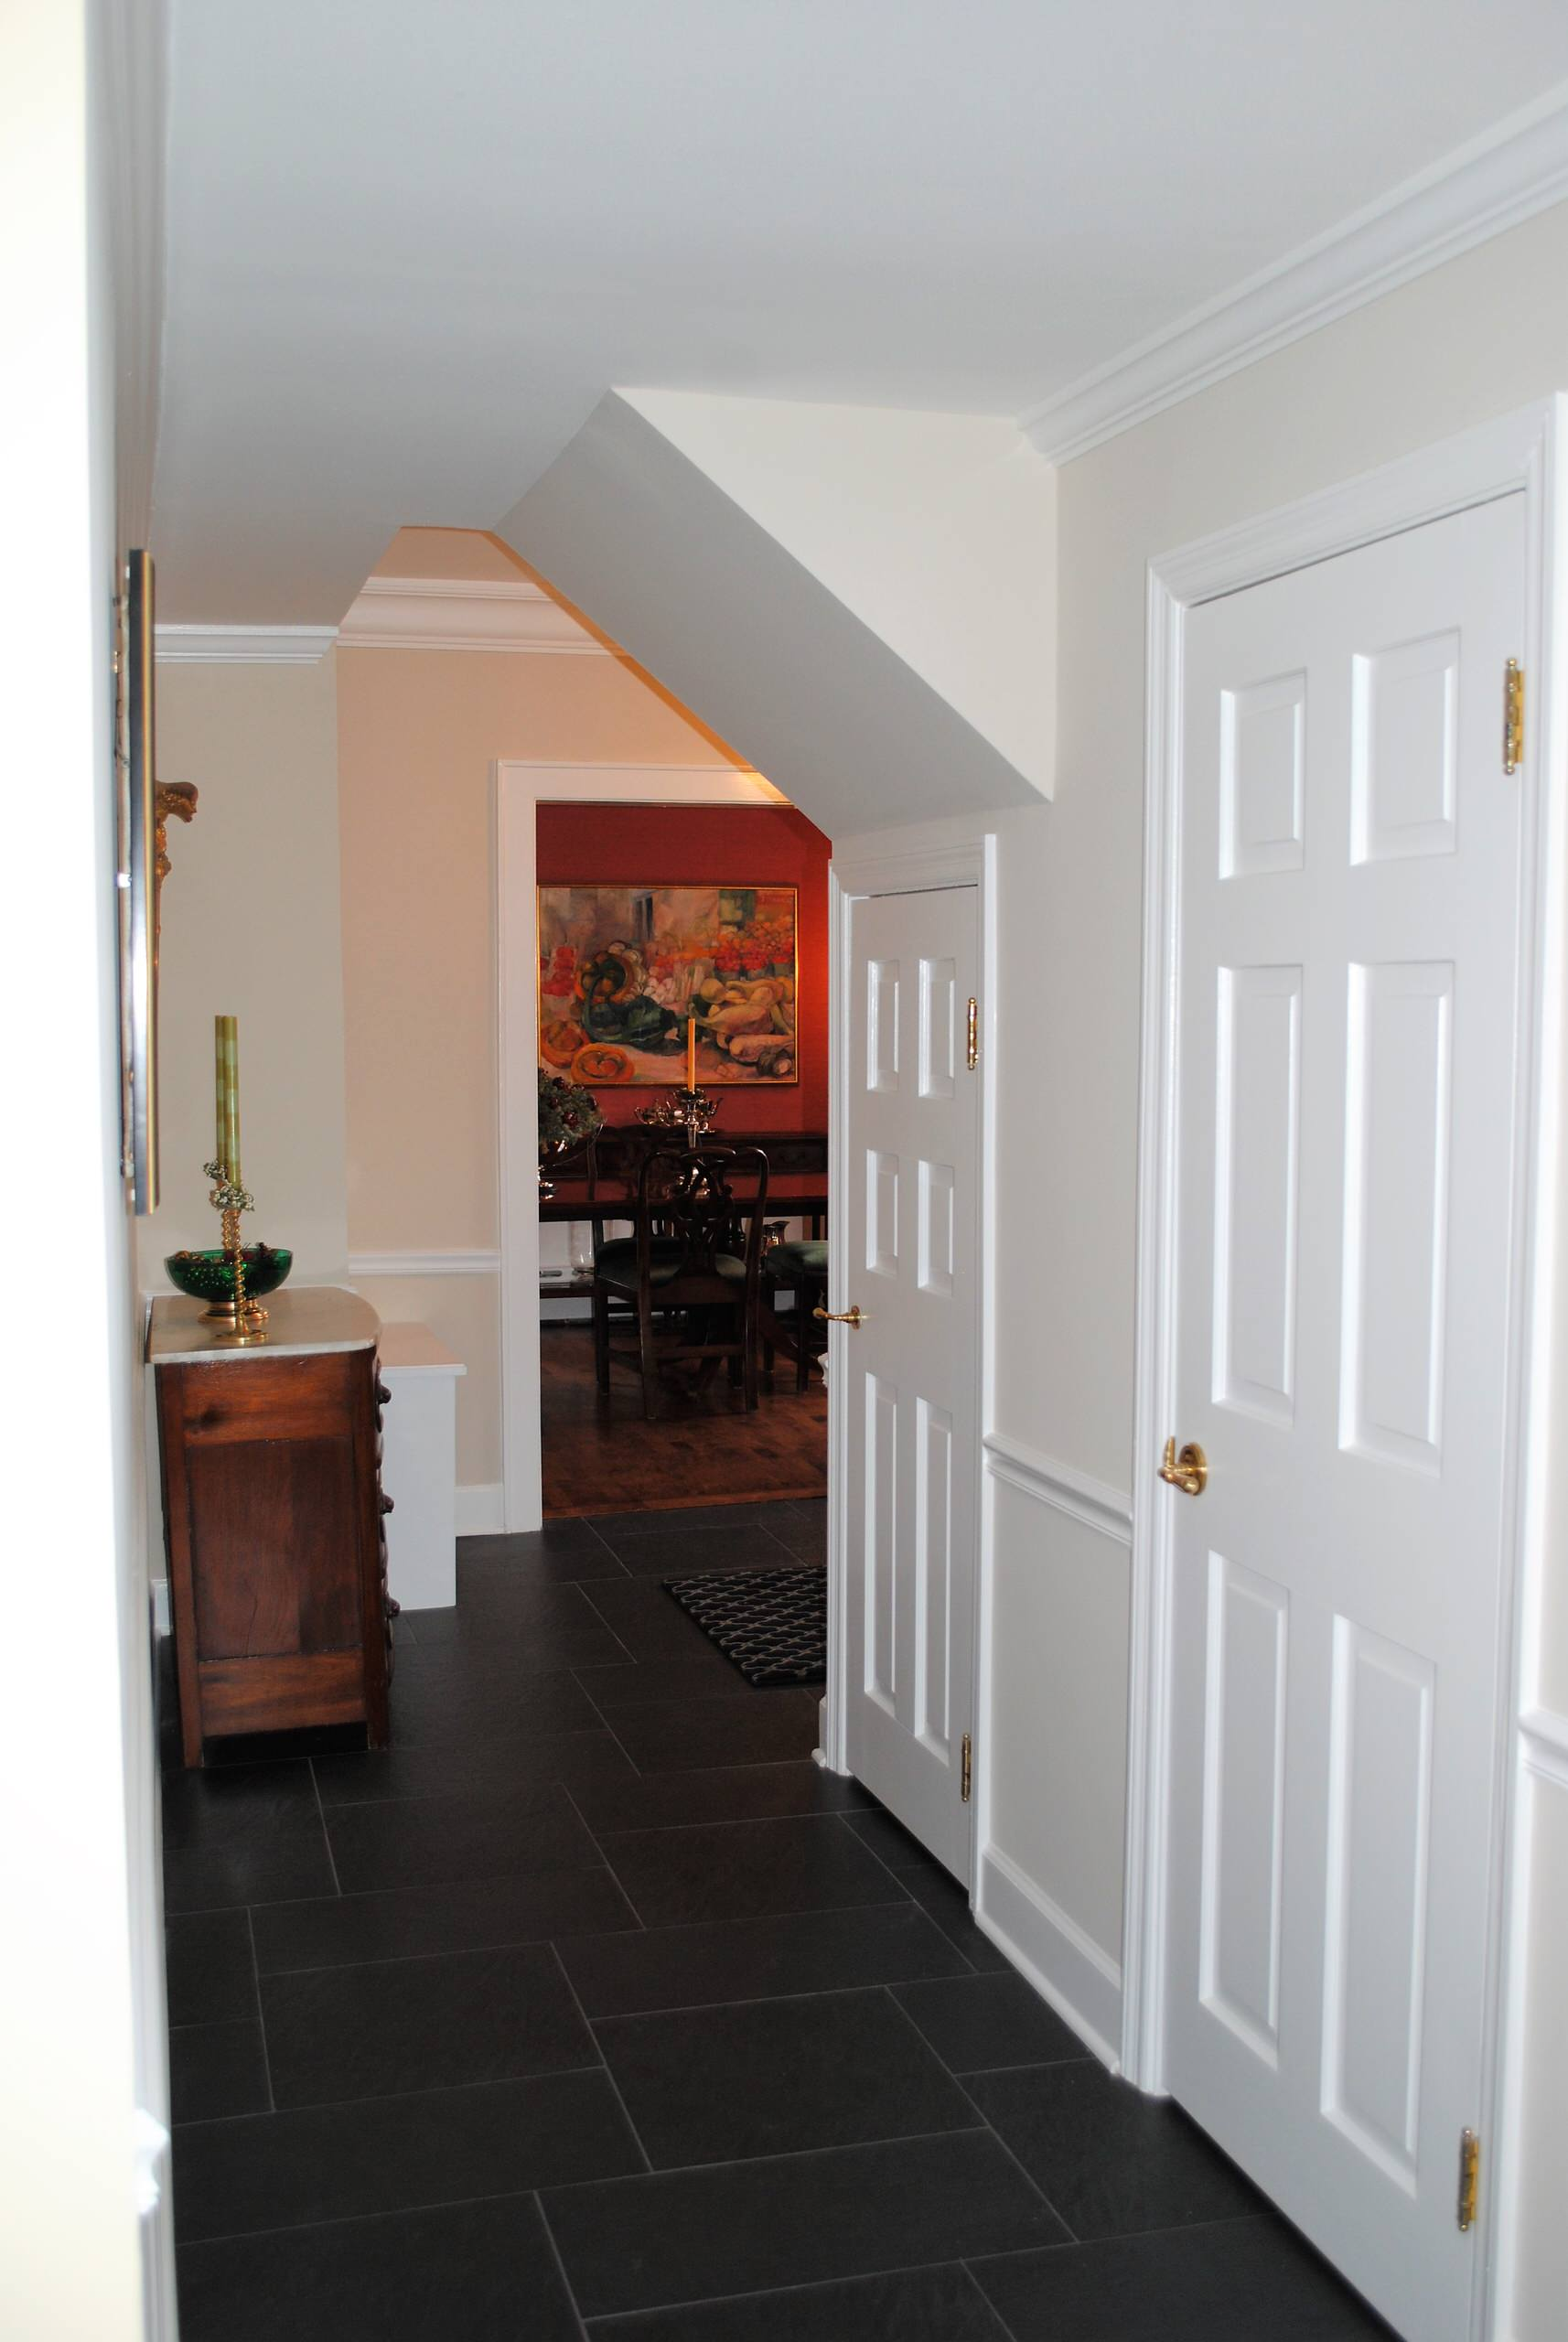 Lake Forest Home - Fireplace, Staircase and Hallway